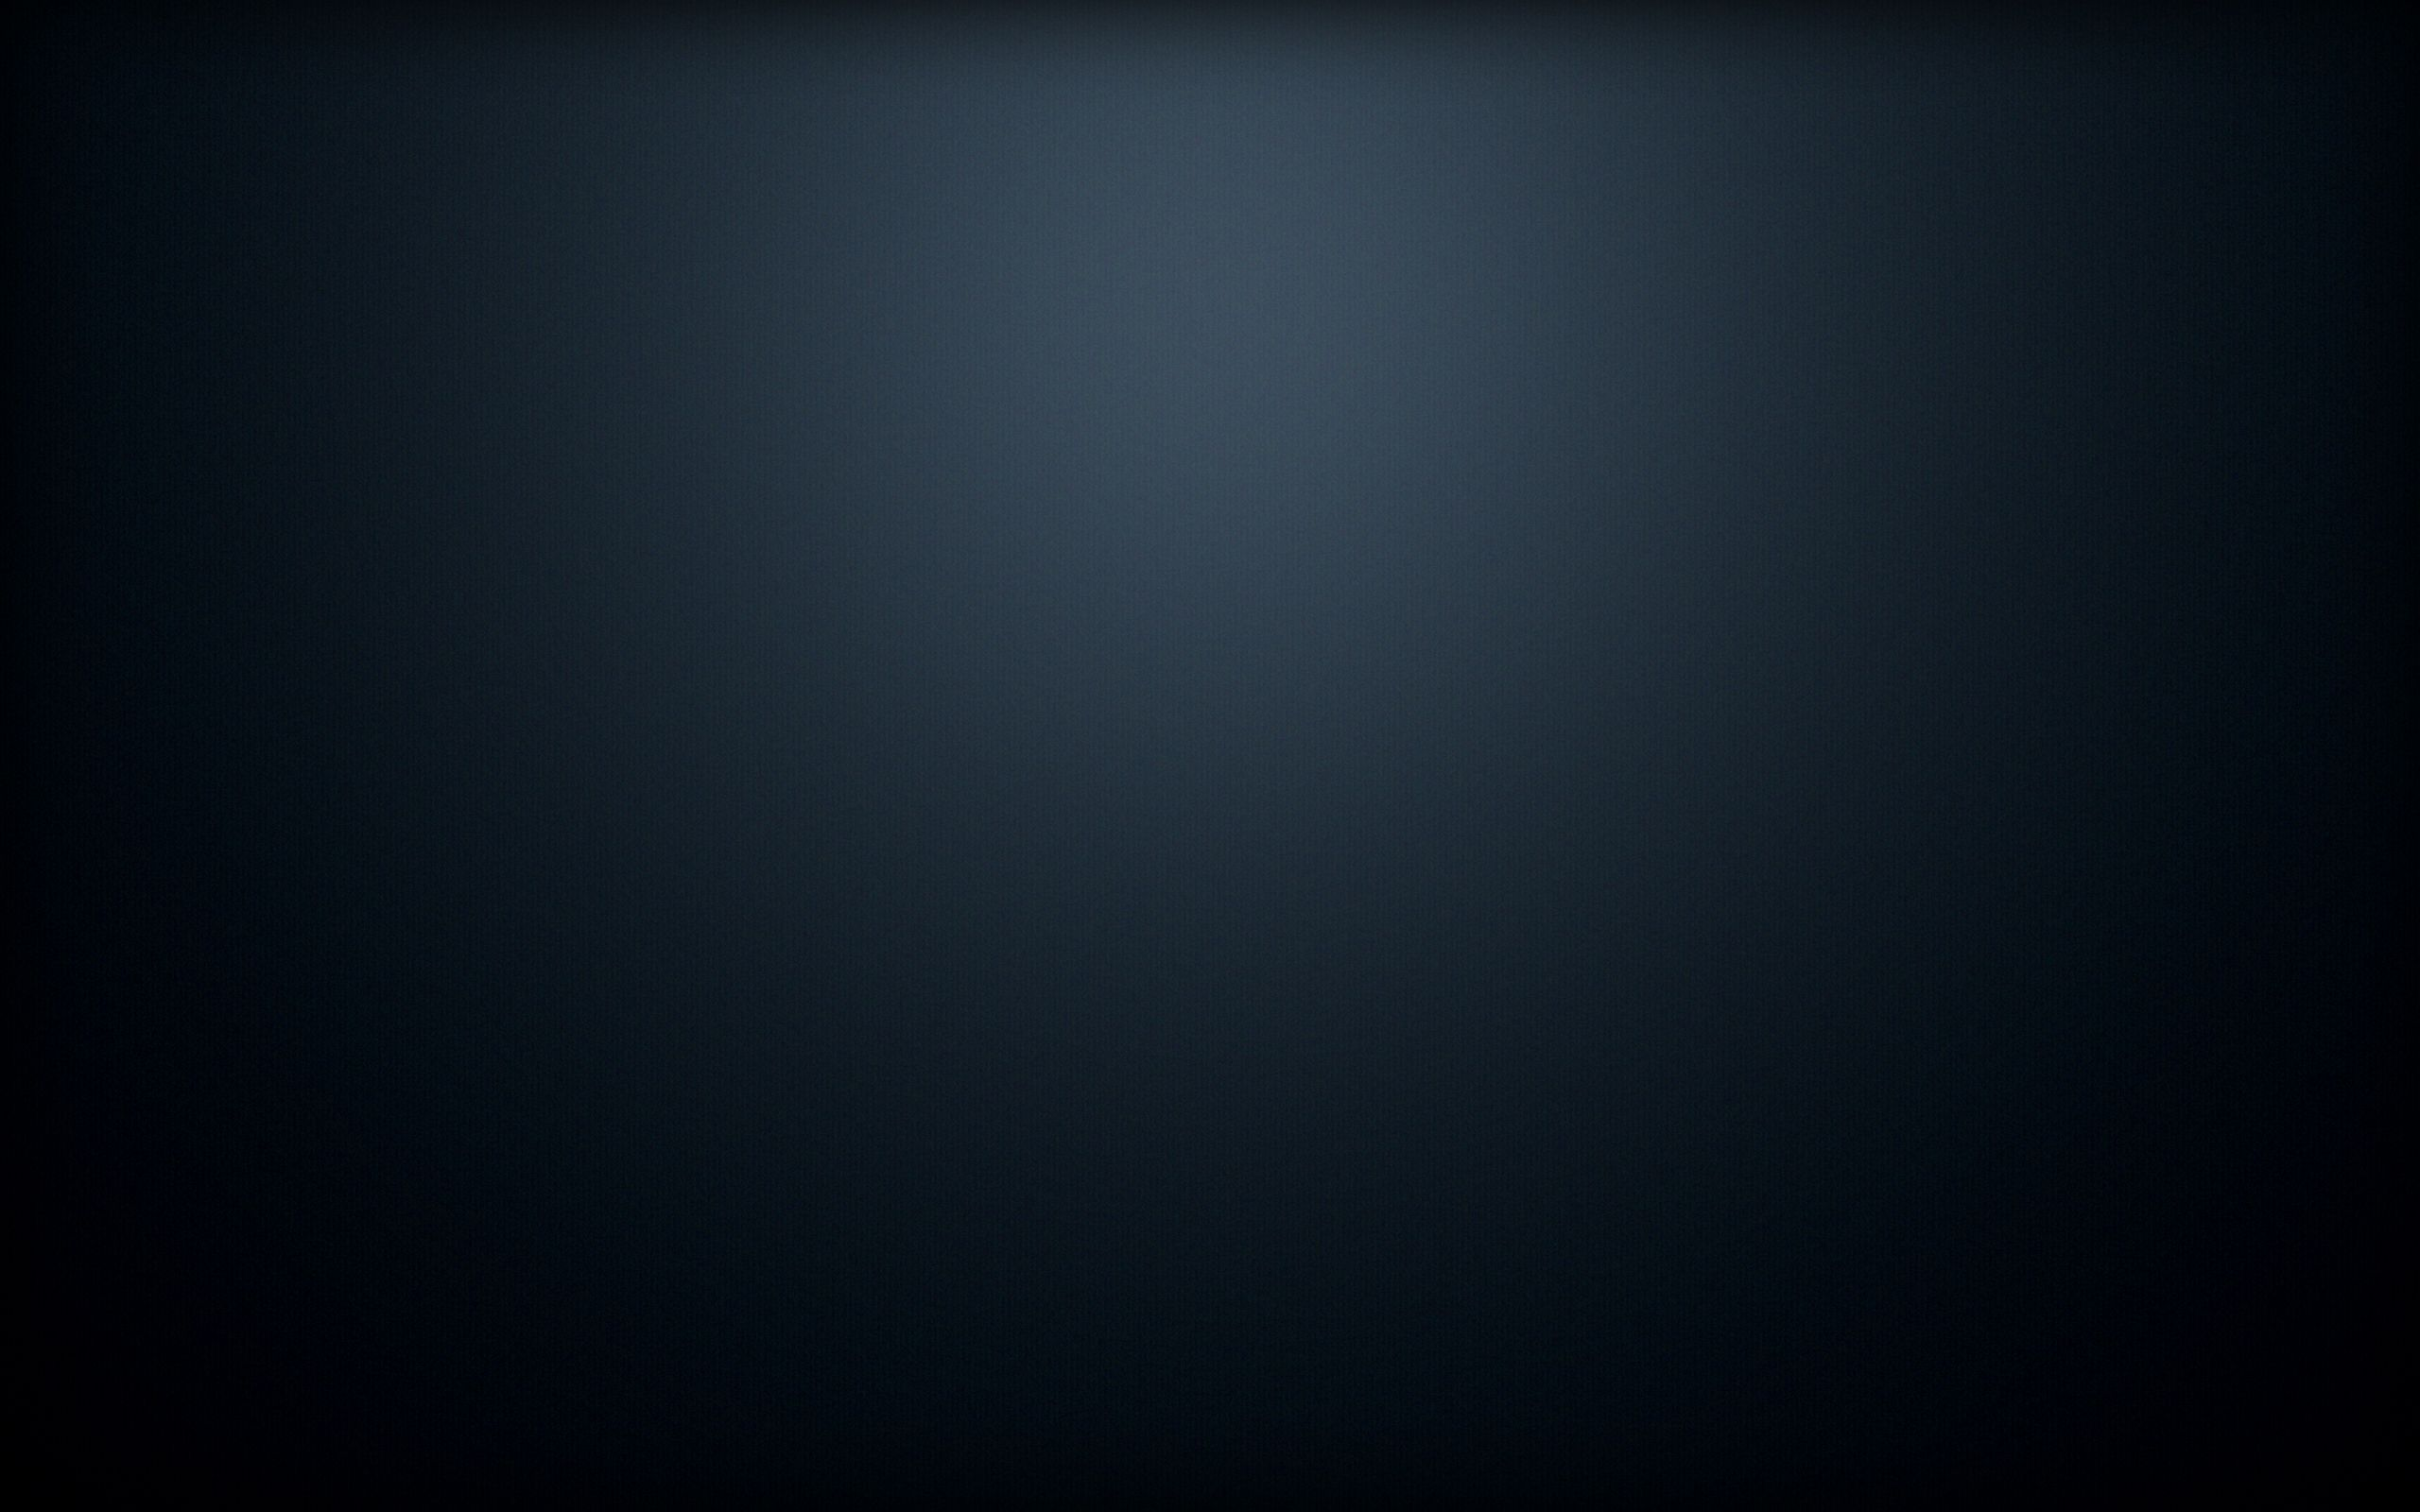 Blue Texture Wallpaper Wallpapersafari